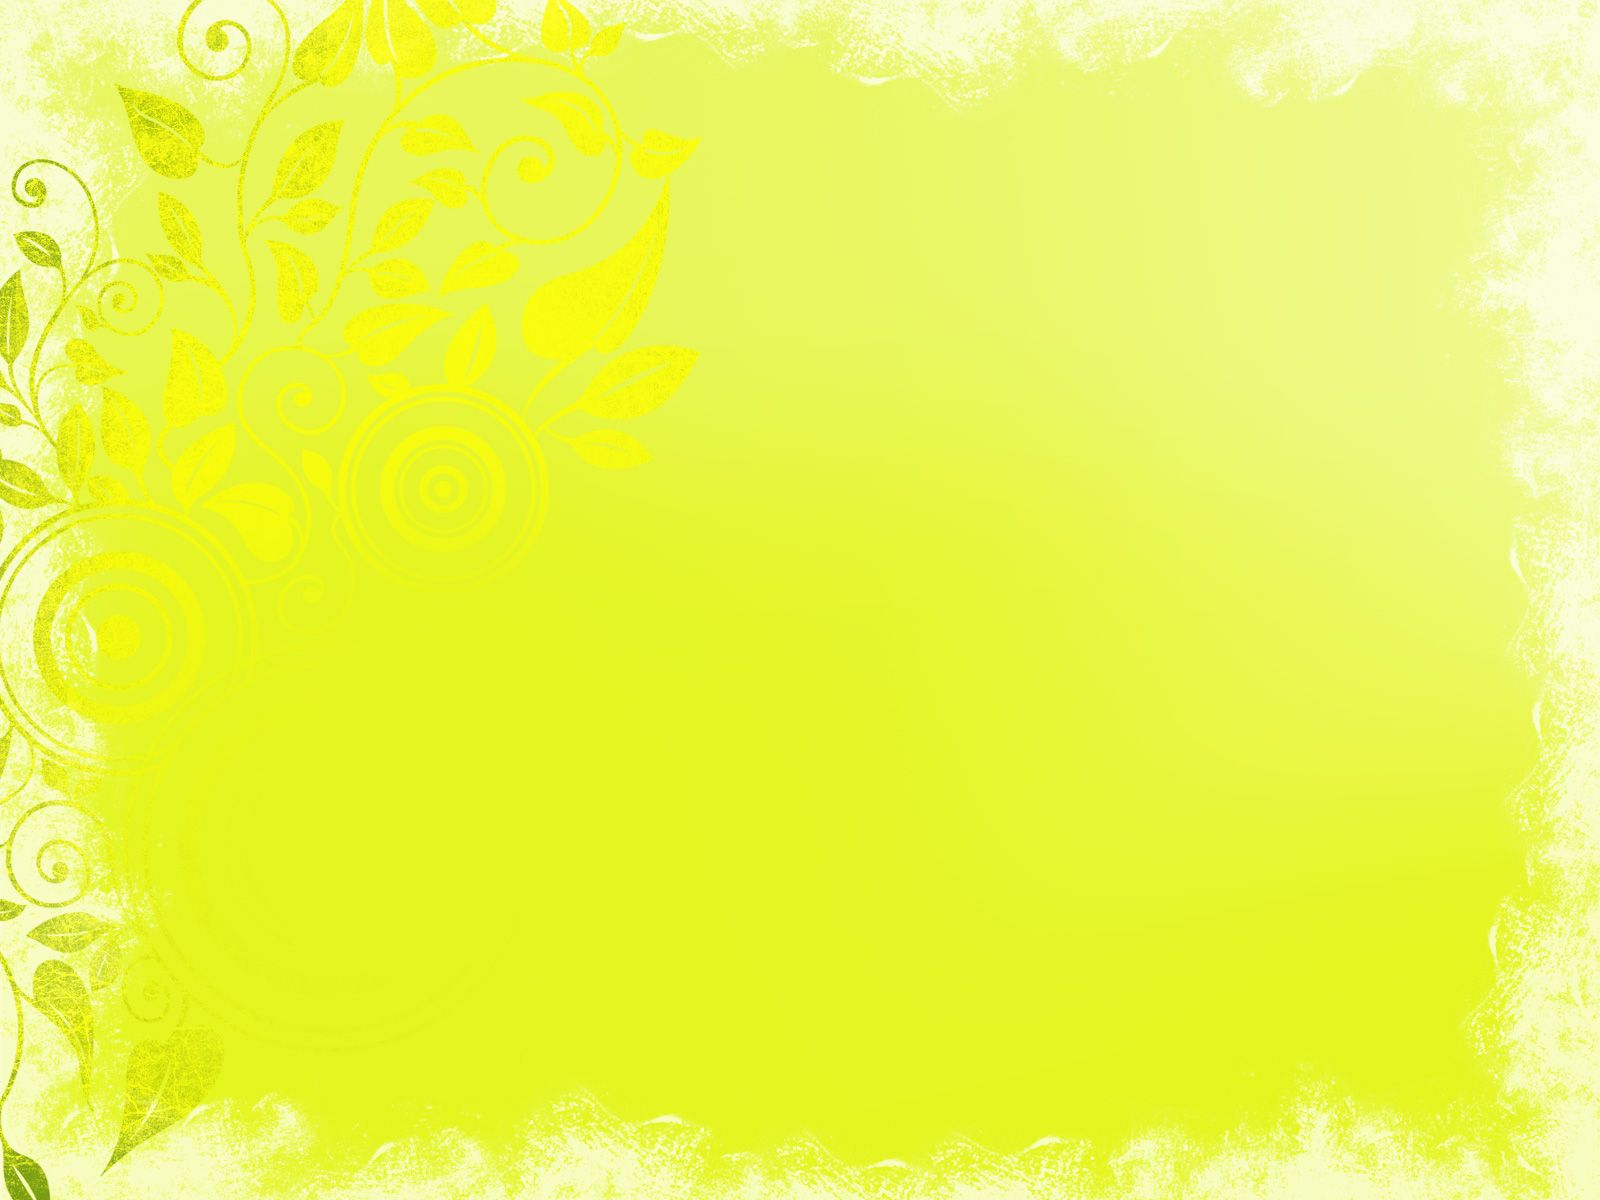 yellow electricity background-#39